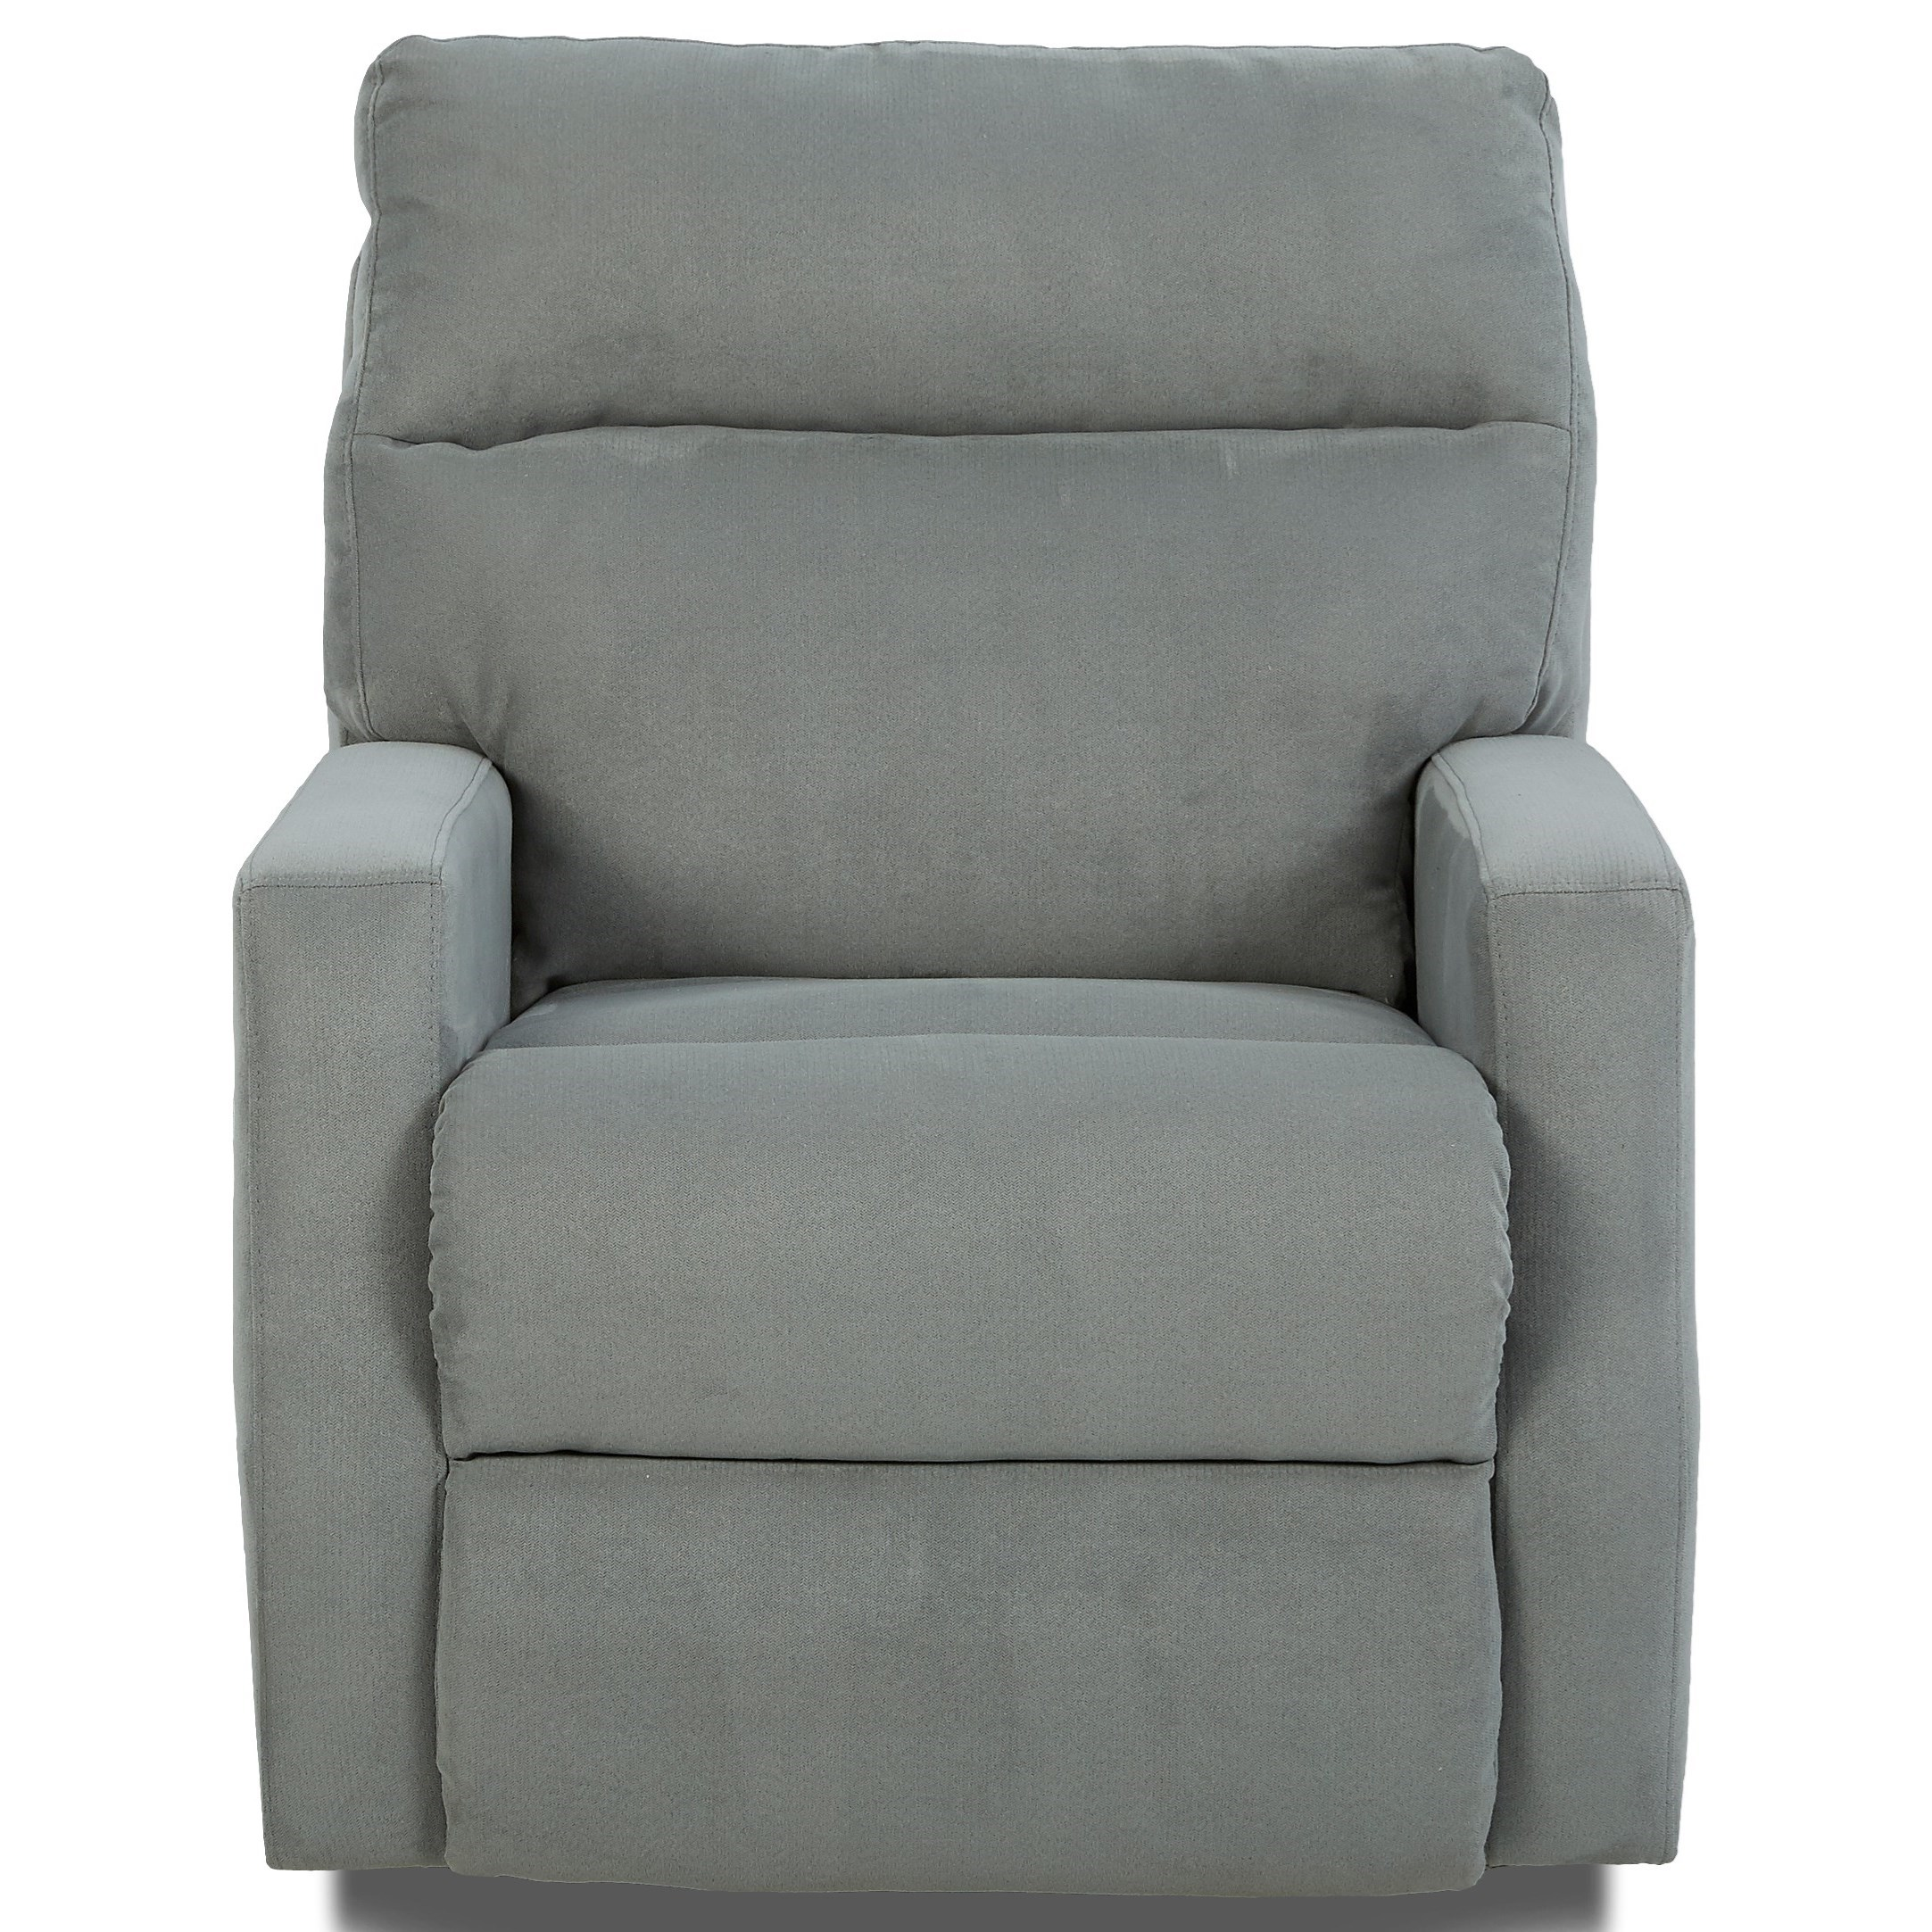 Klaussner Monticello Power Reclining Chair - Item Number: 41503 PWRC-GEO SURF